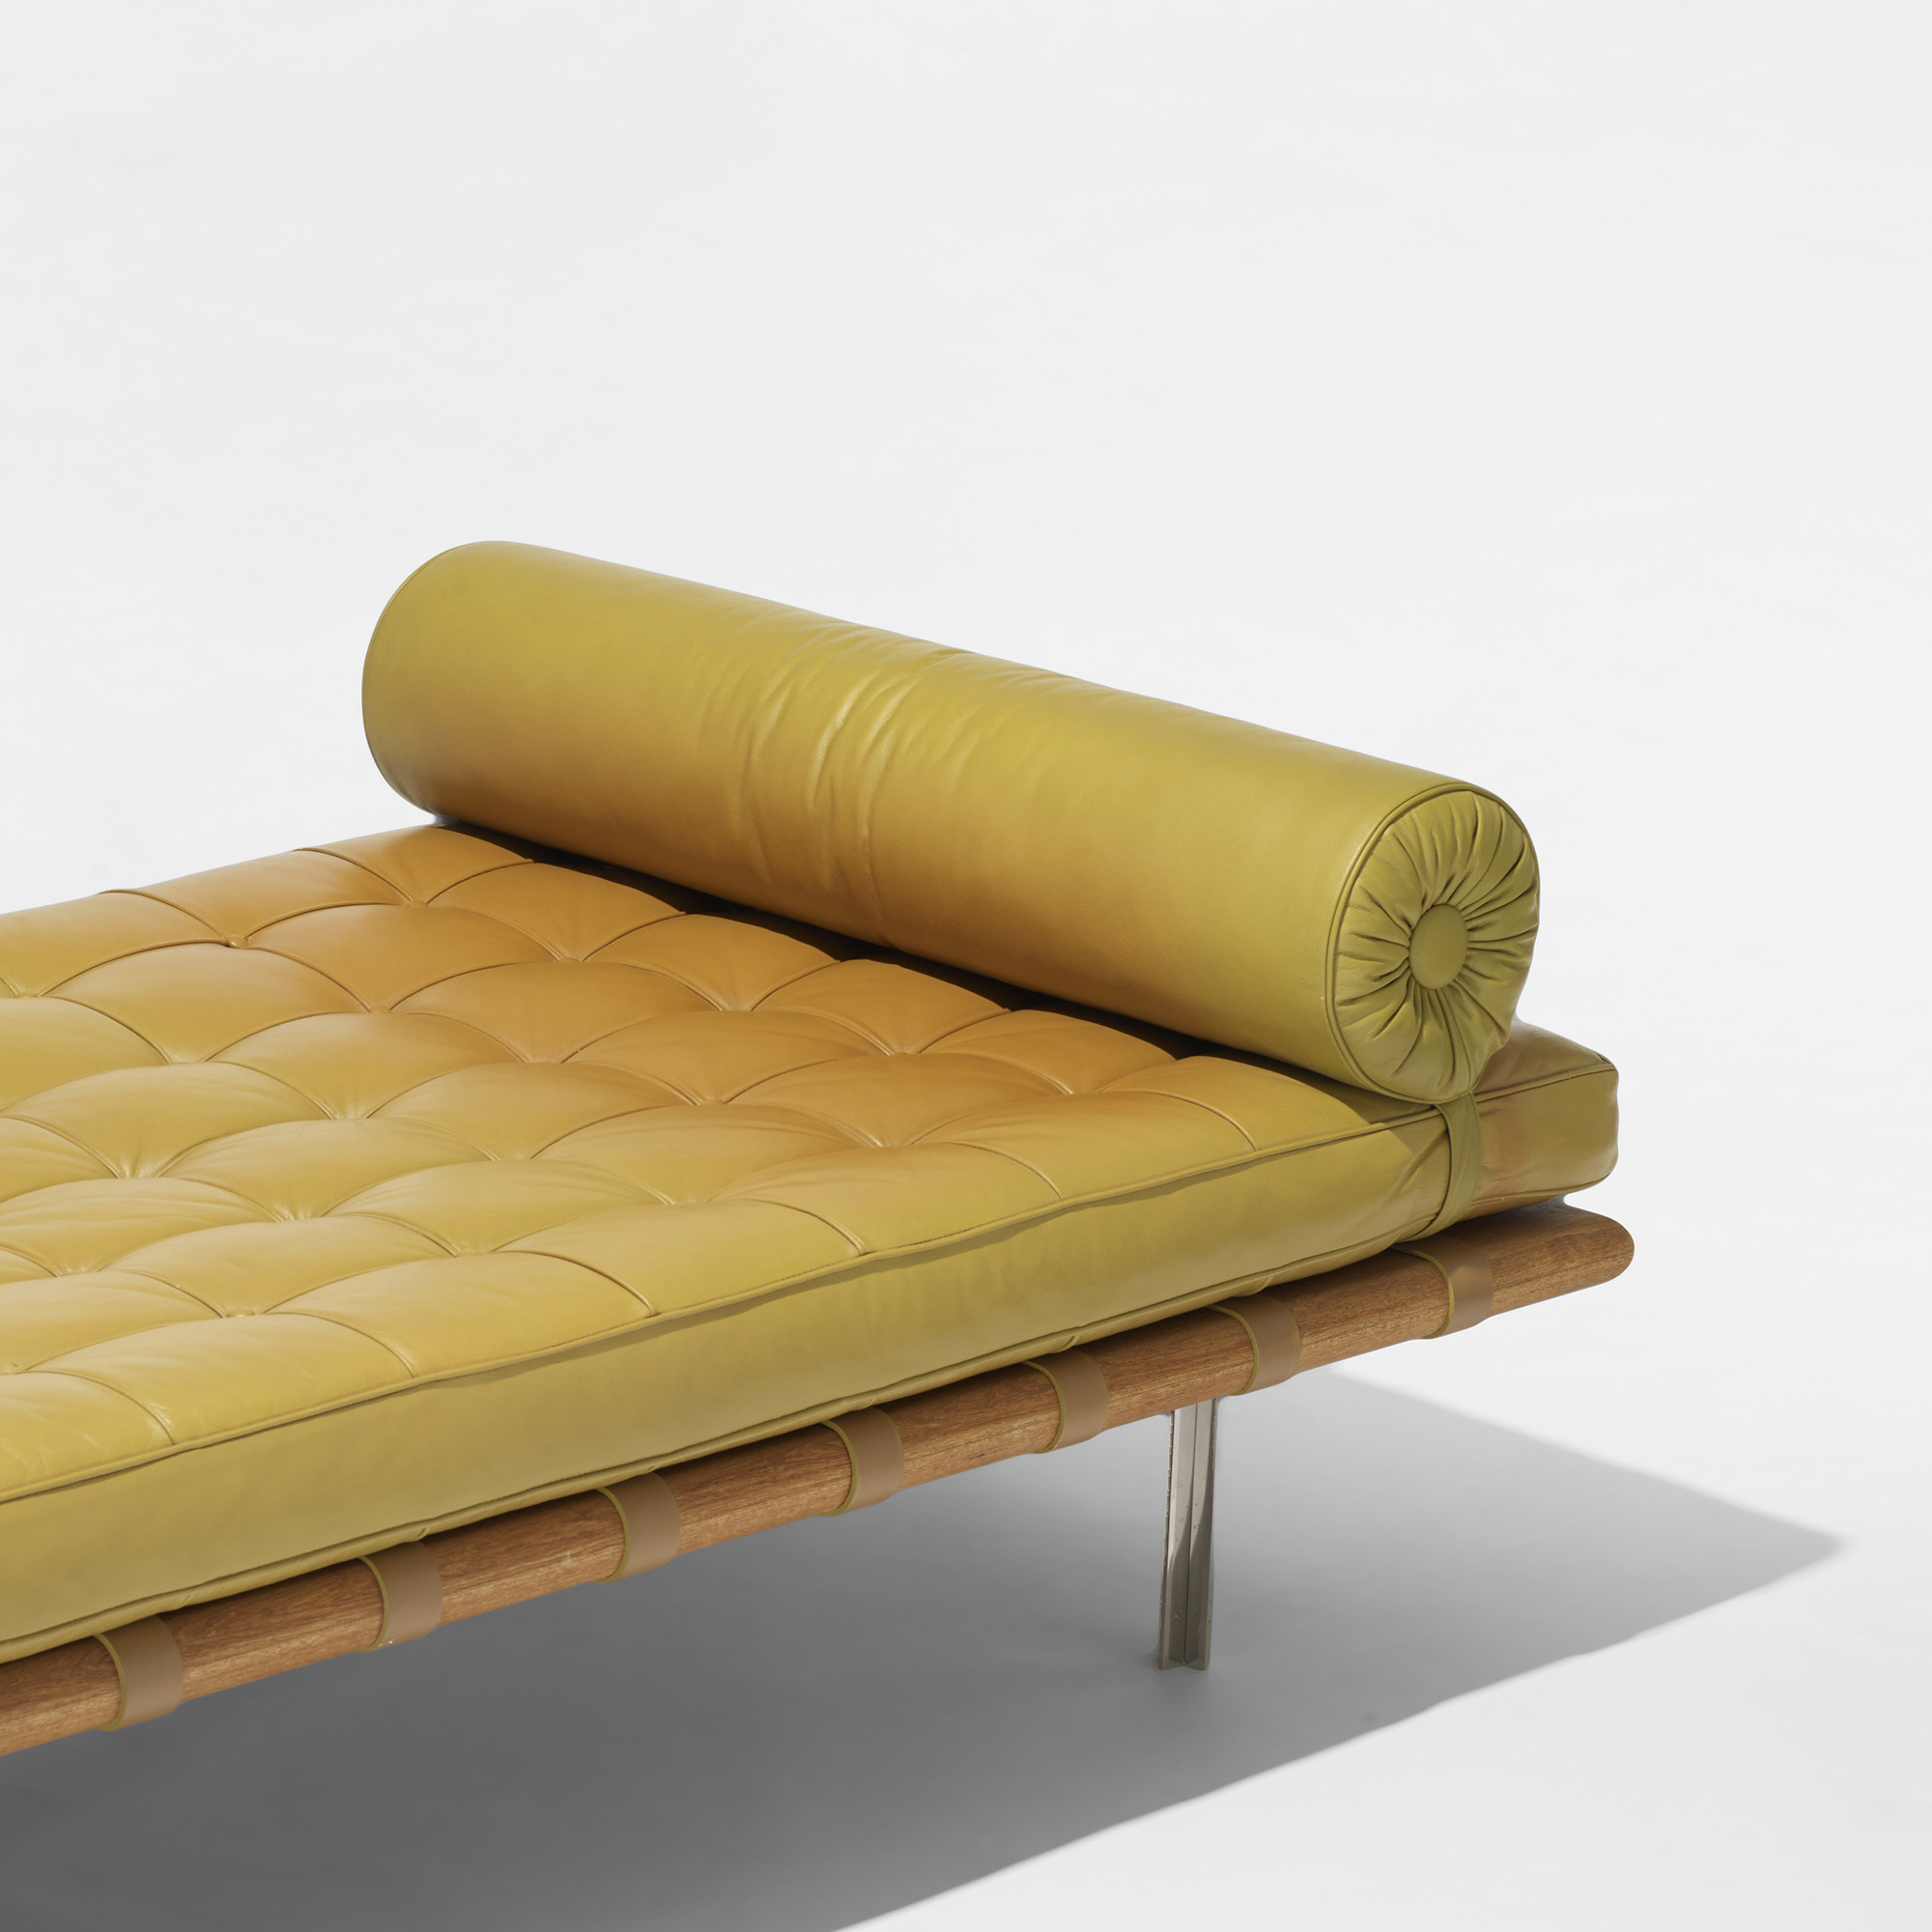 517 Ludwig Mies van der Rohe Barcelona daybed from 860 Lake